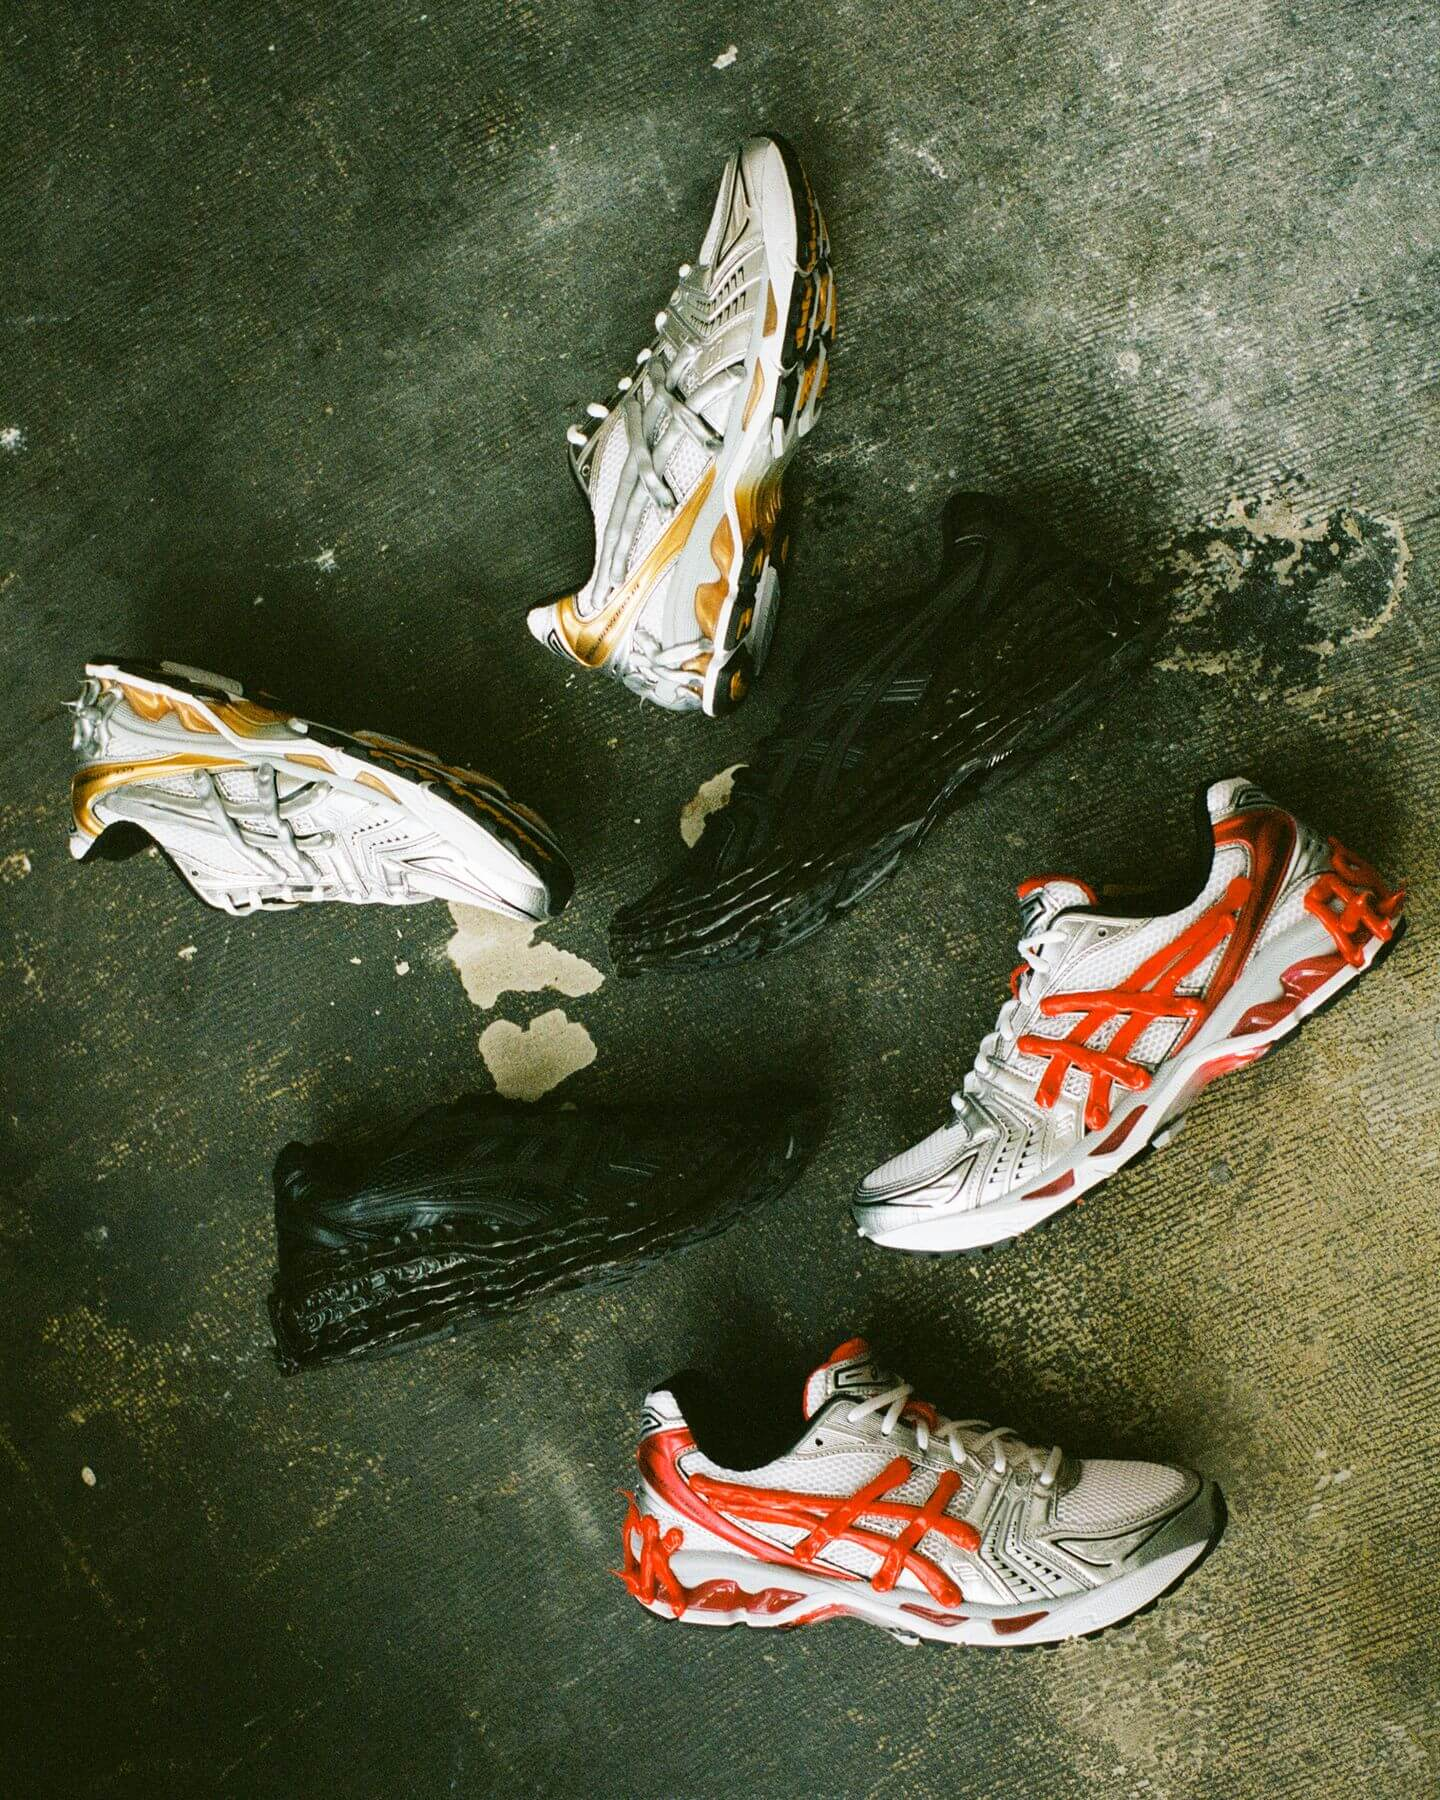 the whole collection - Dennis Buck - Asics Gel-Kayano 14